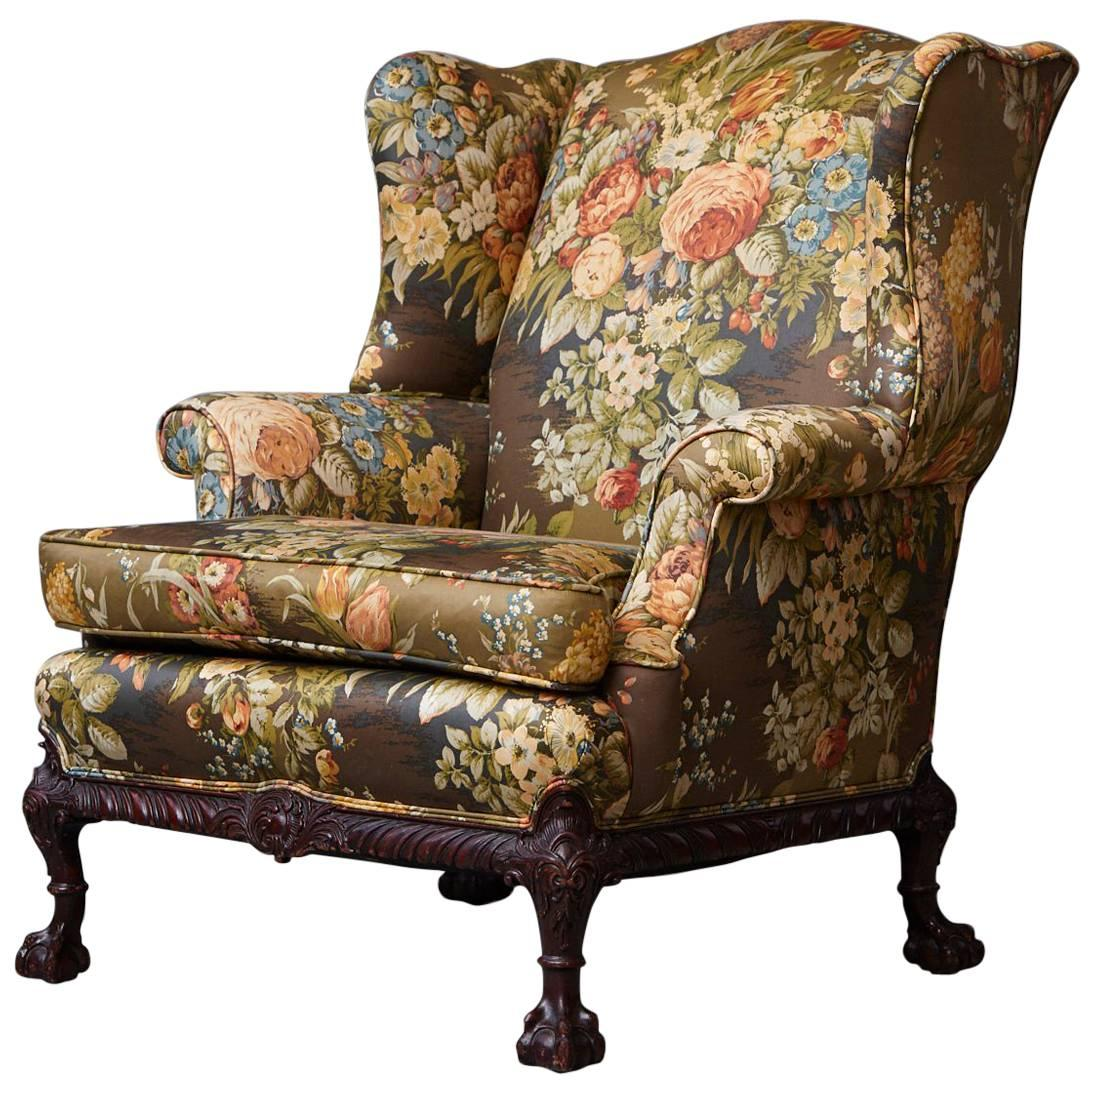 late 19th century chippendale mahogany wing back chair with claw and ball feet